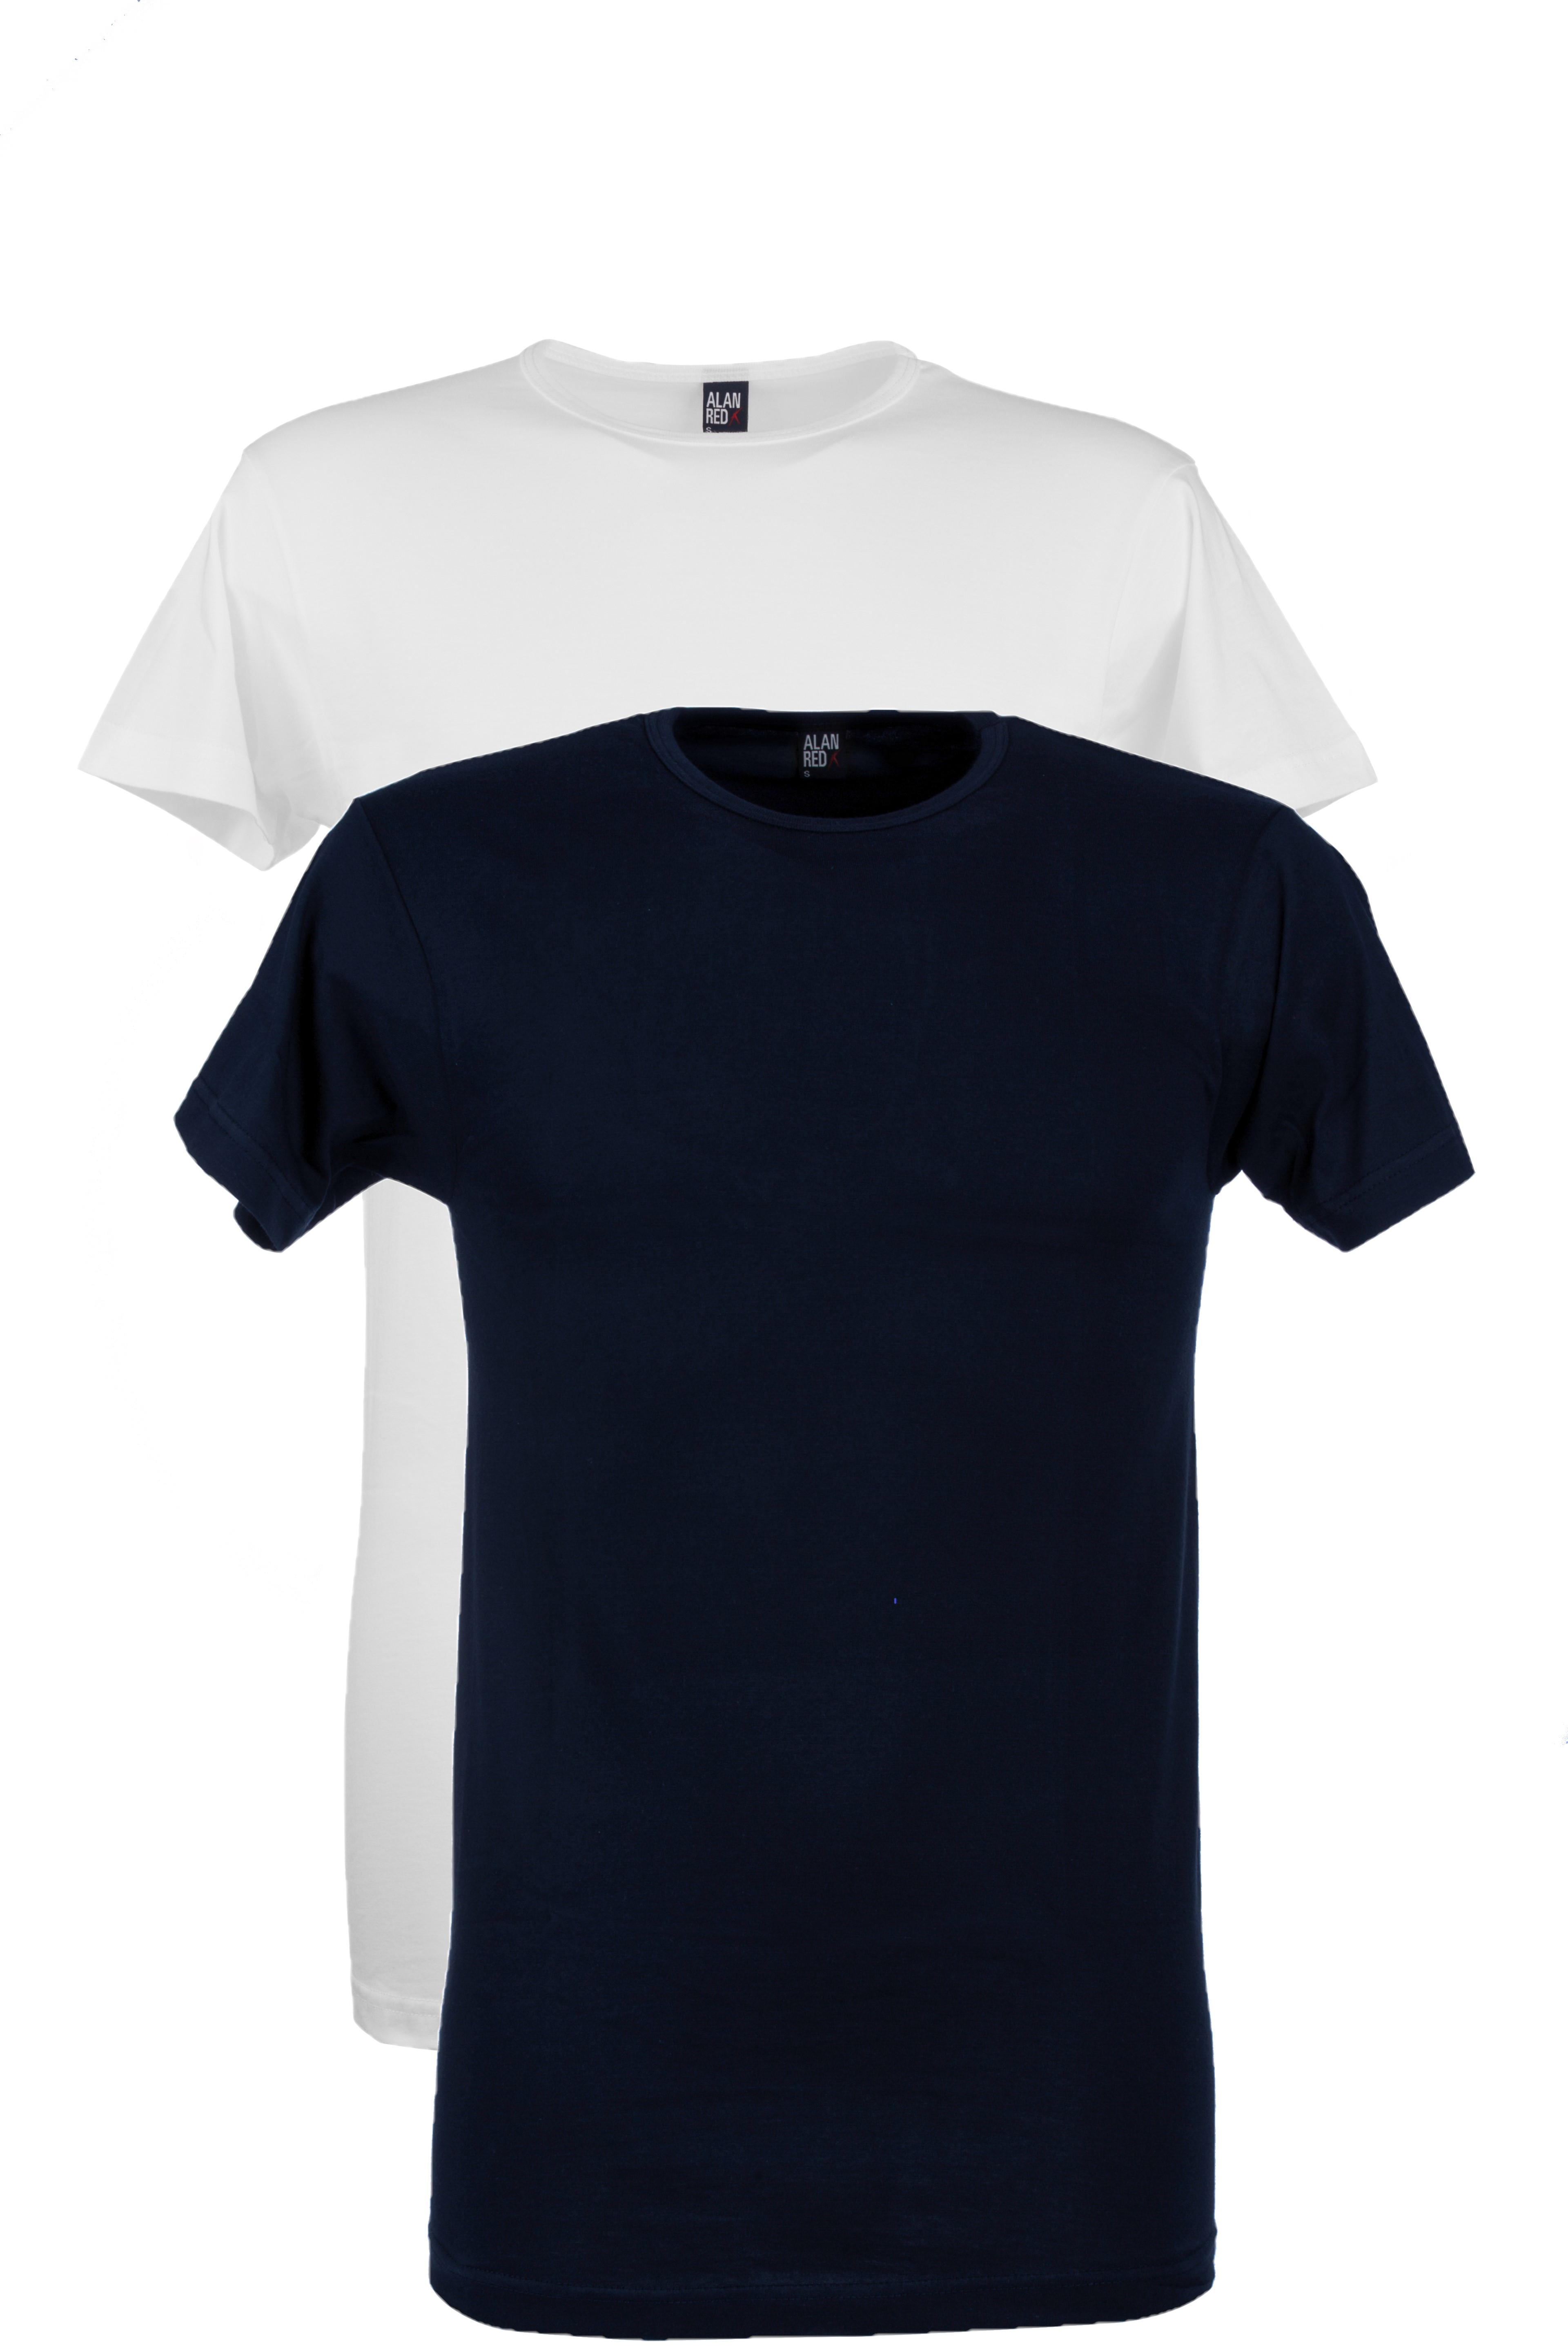 Alan Red Derby  - navy/wit 2-pack